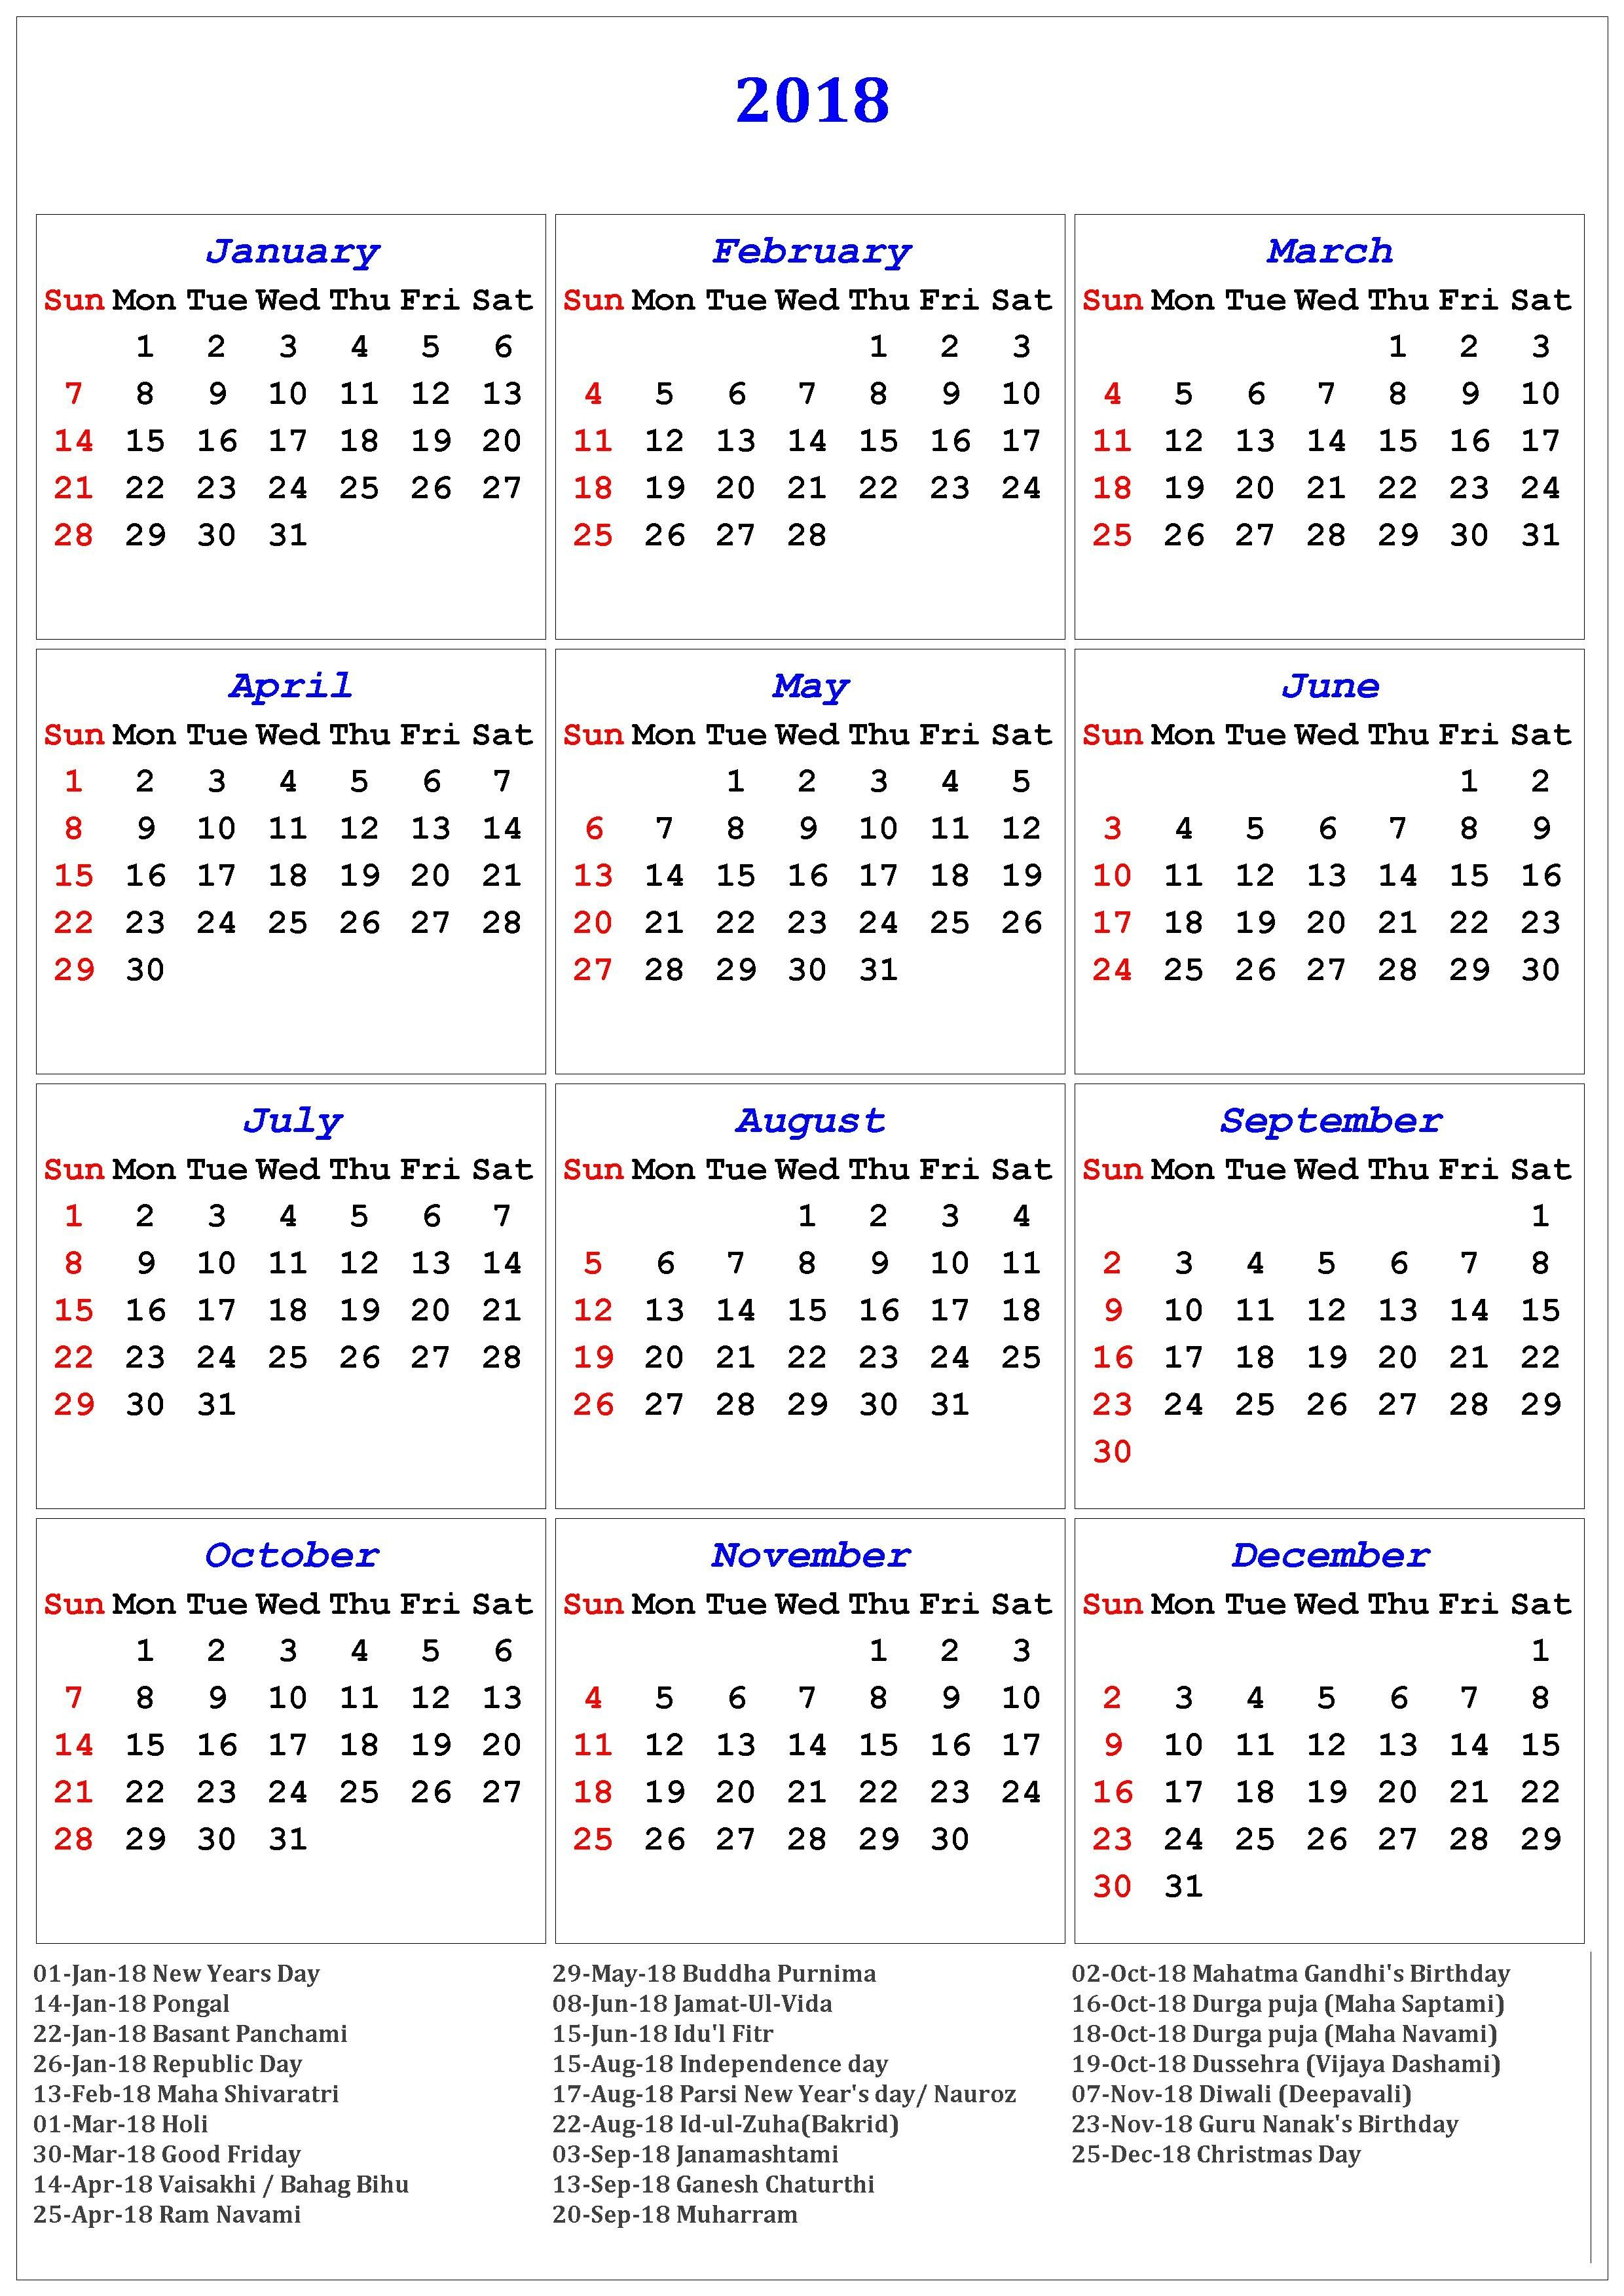 2018 Calendar Of Holidays | November Calendar | November